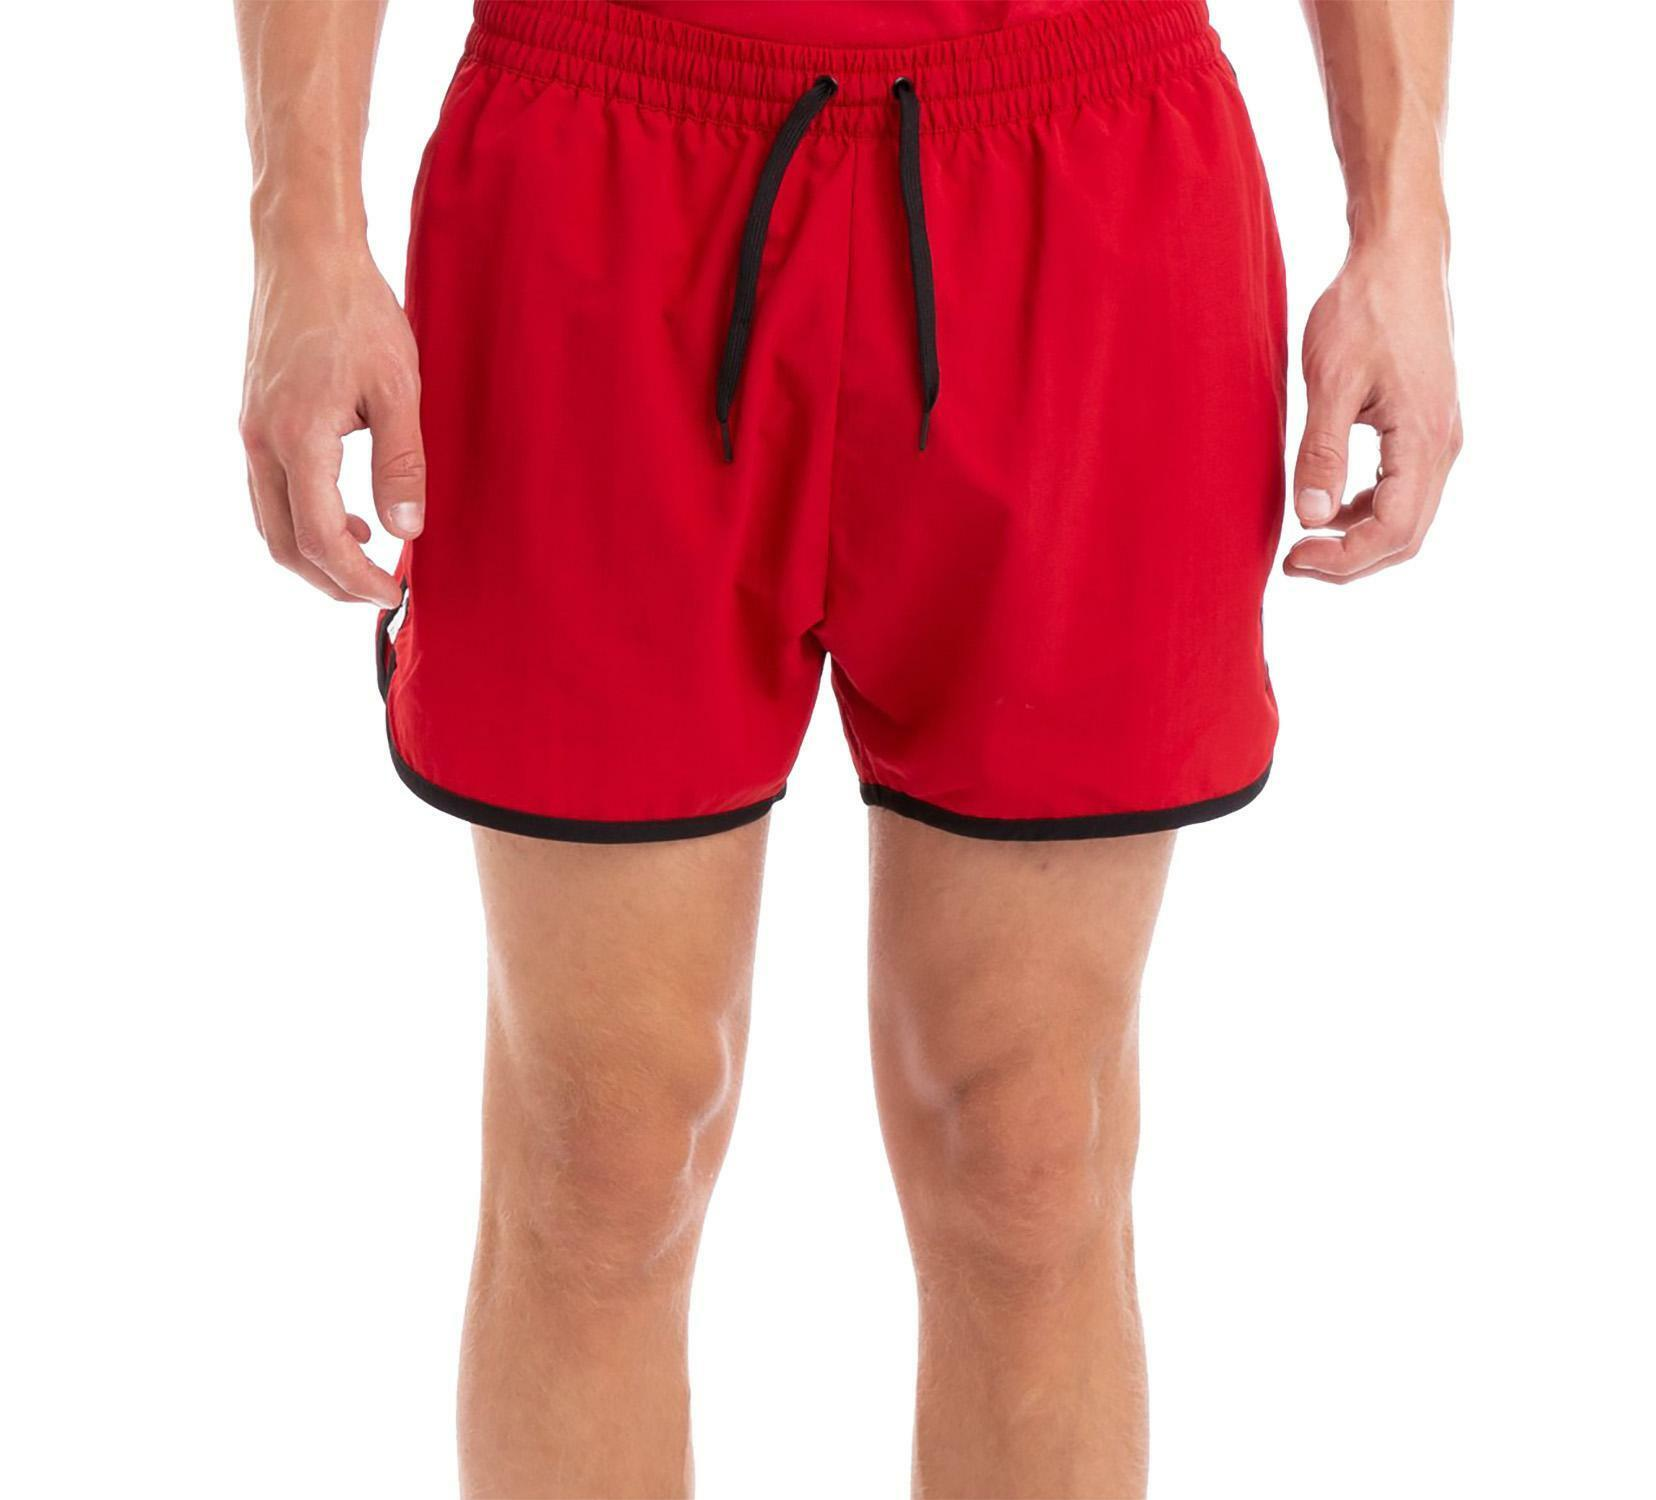 b8bc24bc Details about KAPPA KAPPA AUTHENTIC AGIUS MAN'S RED SWIMSUIT 303WH90998